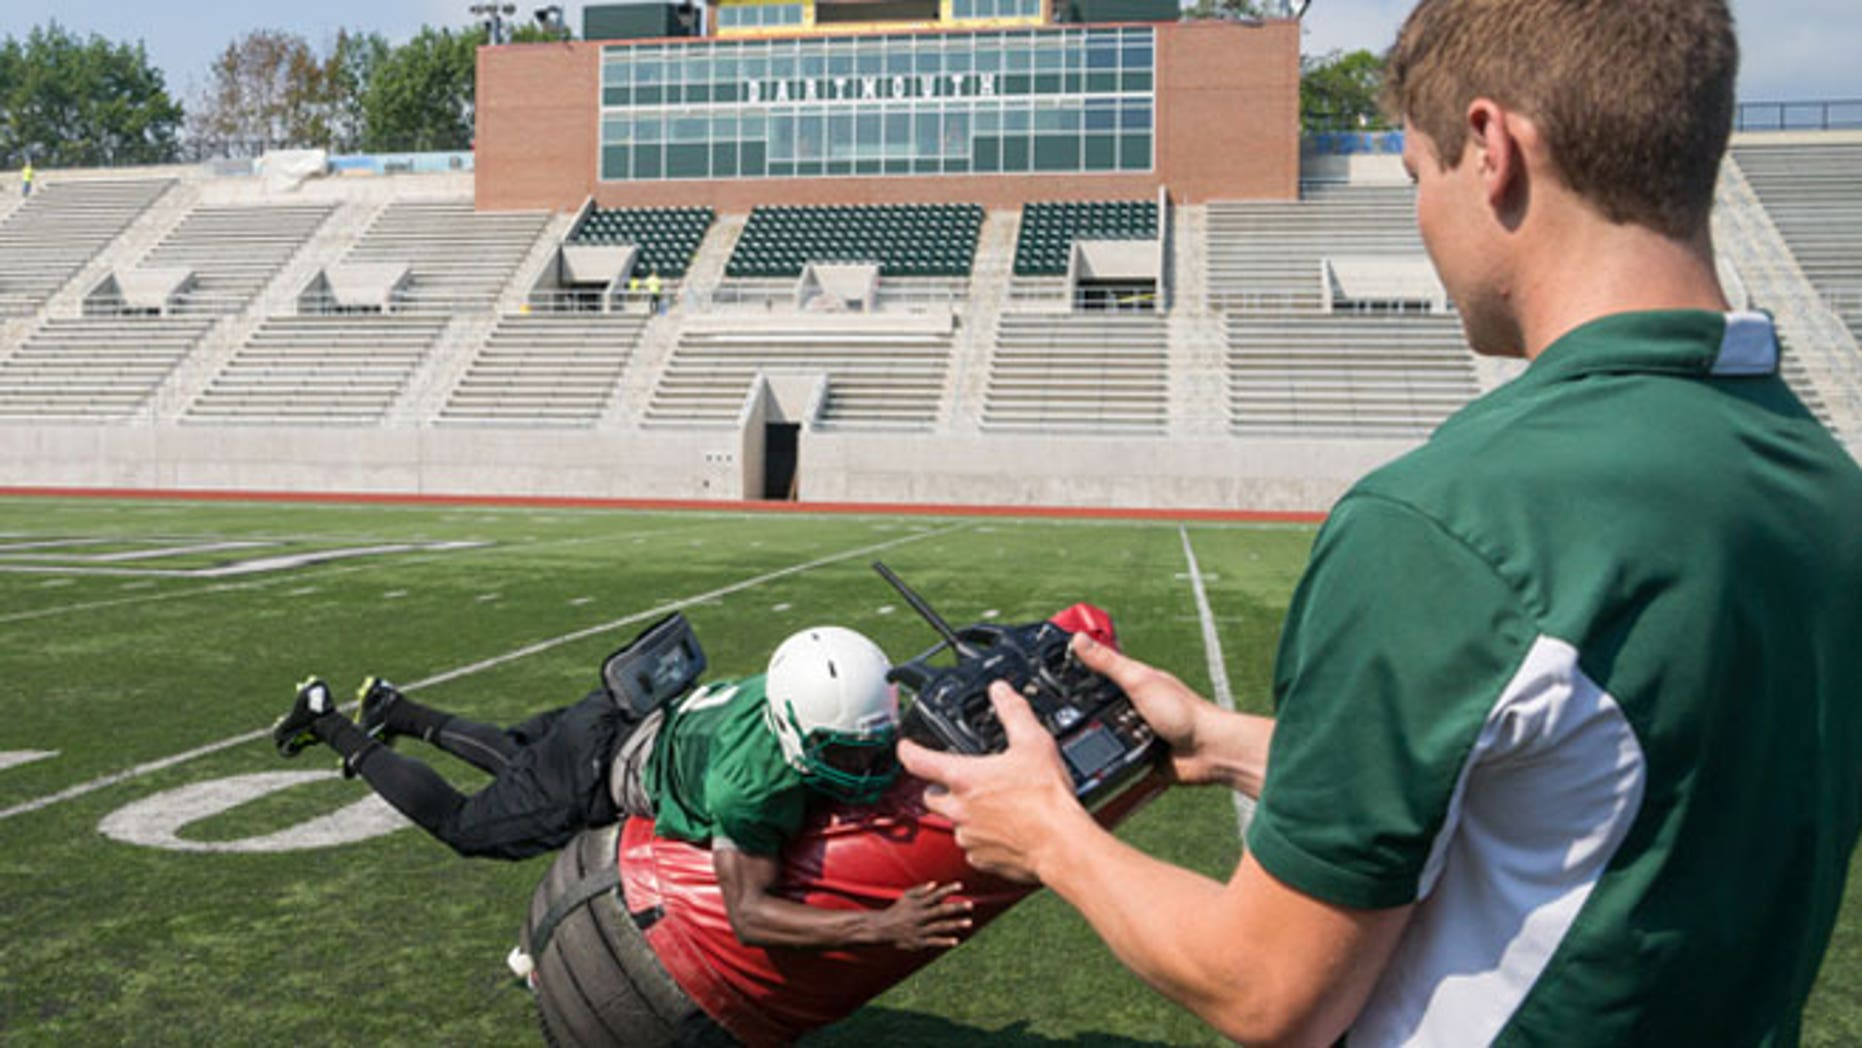 Victor Williams '16 tackles the Mobile Virtual Player, which he and his teammates will use at practice. Quinn Connell '13, Thayer '14, controls the device, which he and other Thayer engineers helped develop.